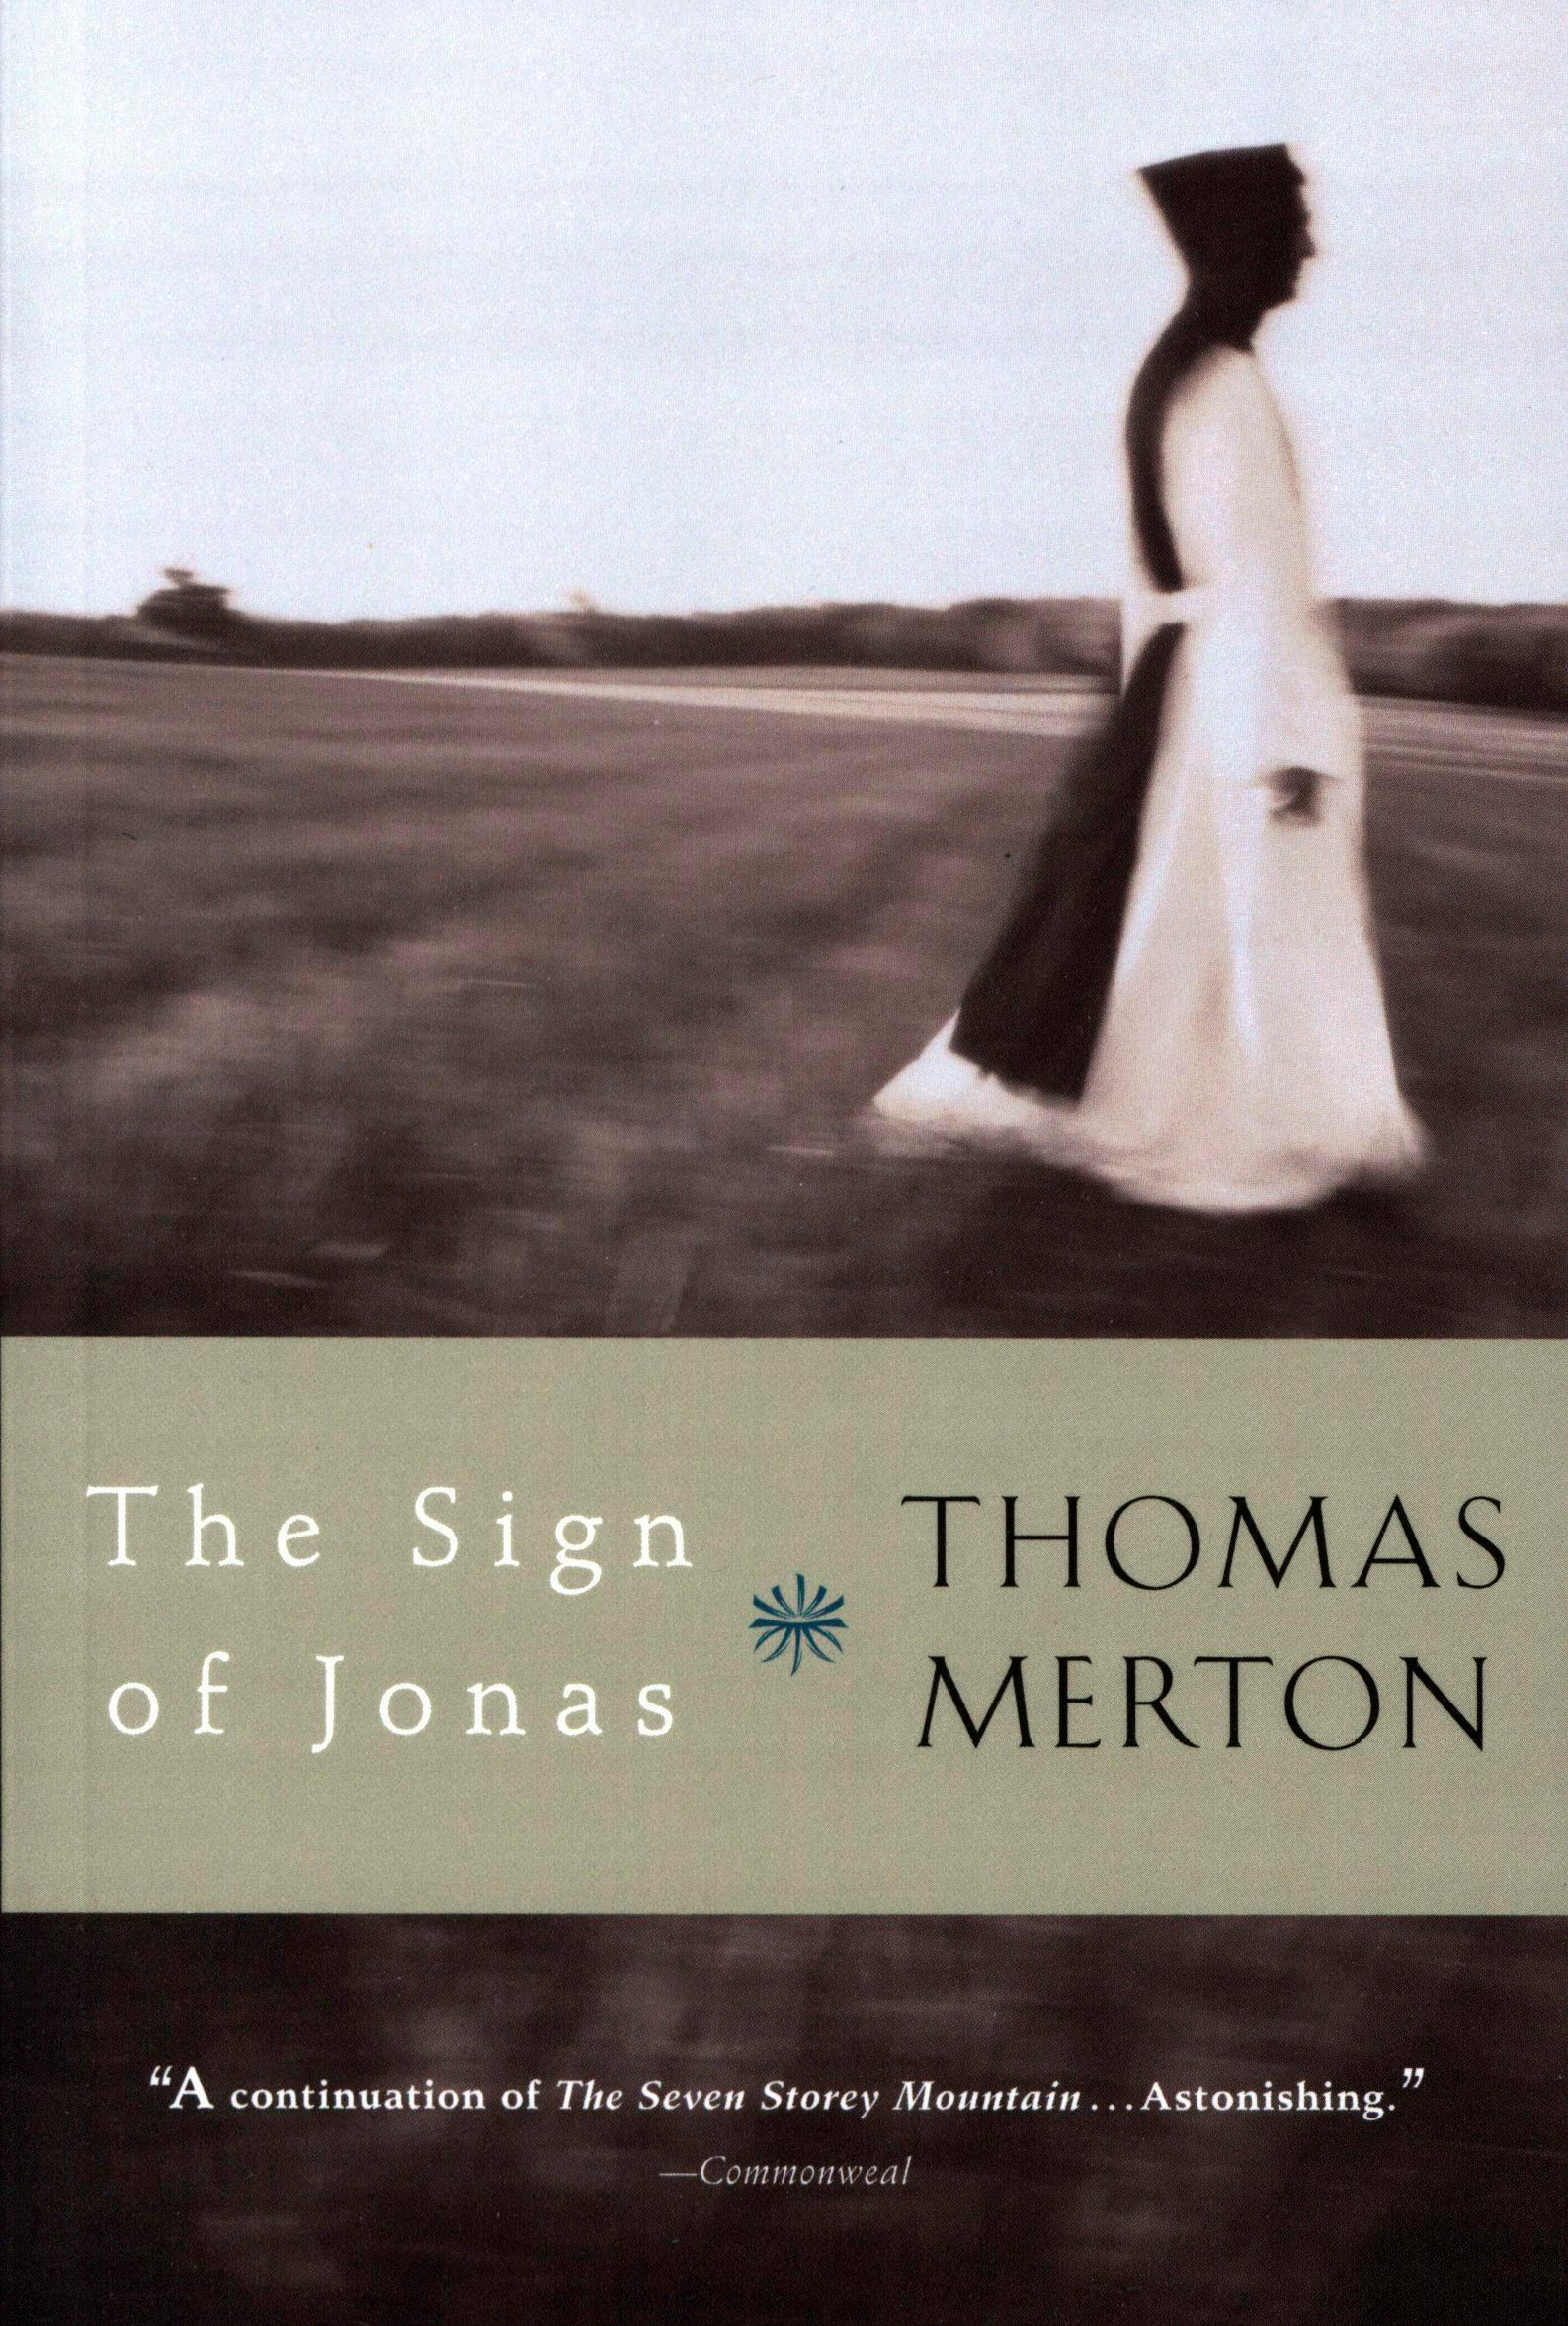 The Sign of Jonas By: Thomas Merton